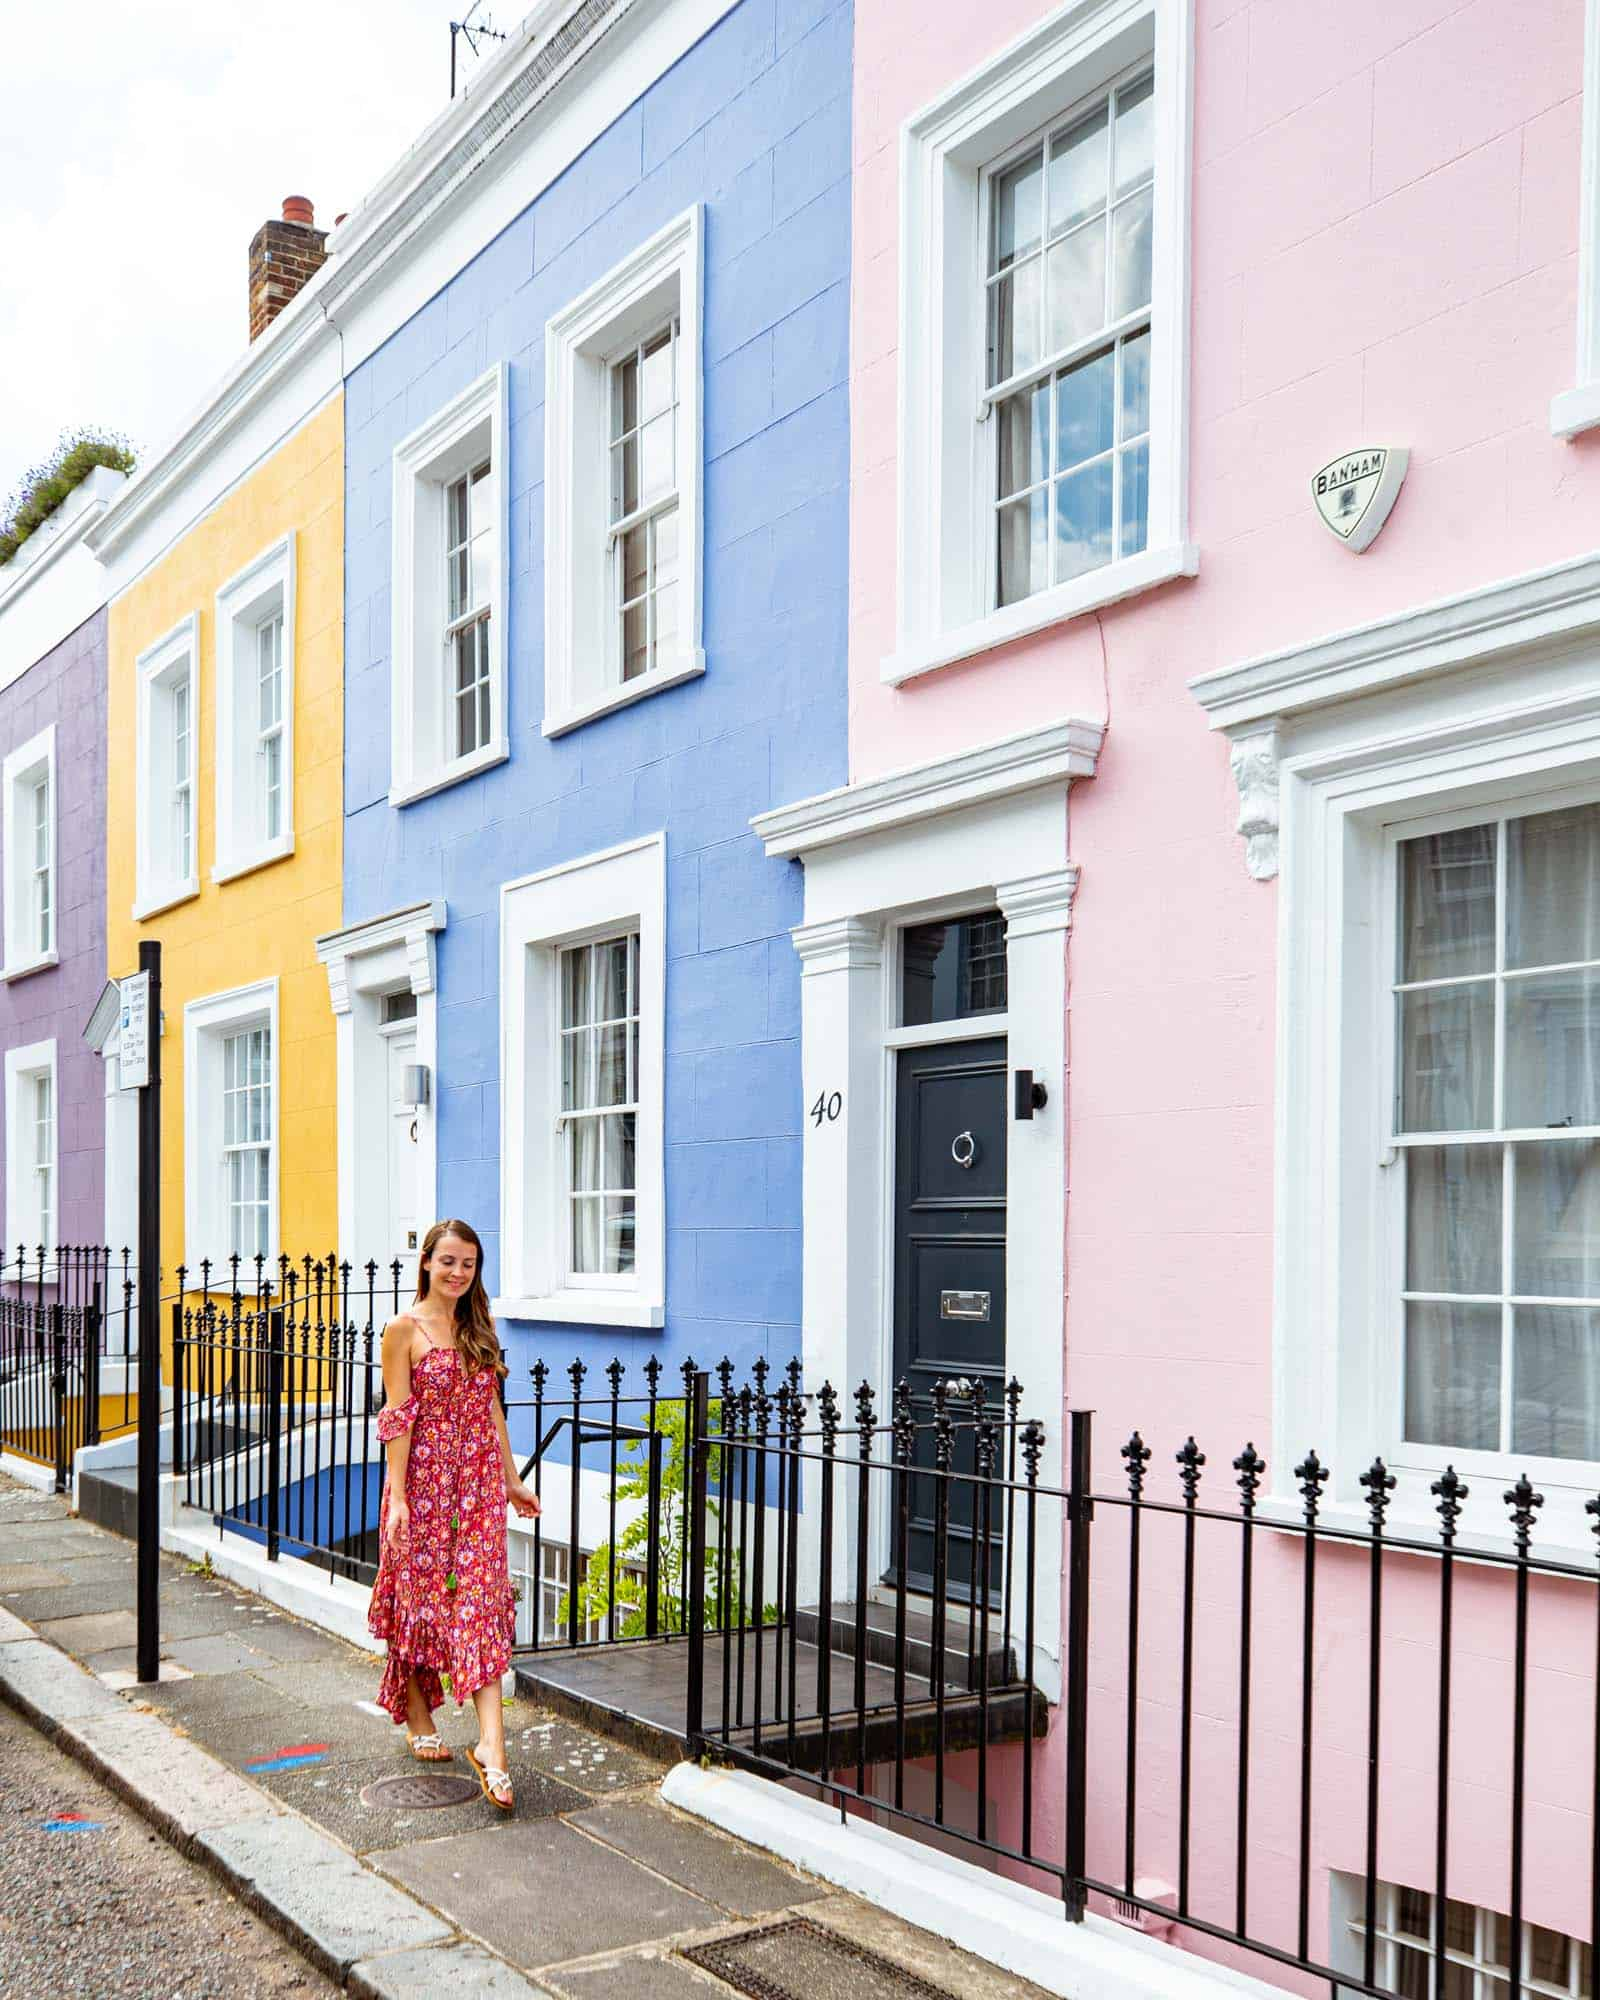 Notting Hill London: Hillgate-Place-Colourful-Houses-in-Notting-Hill-London